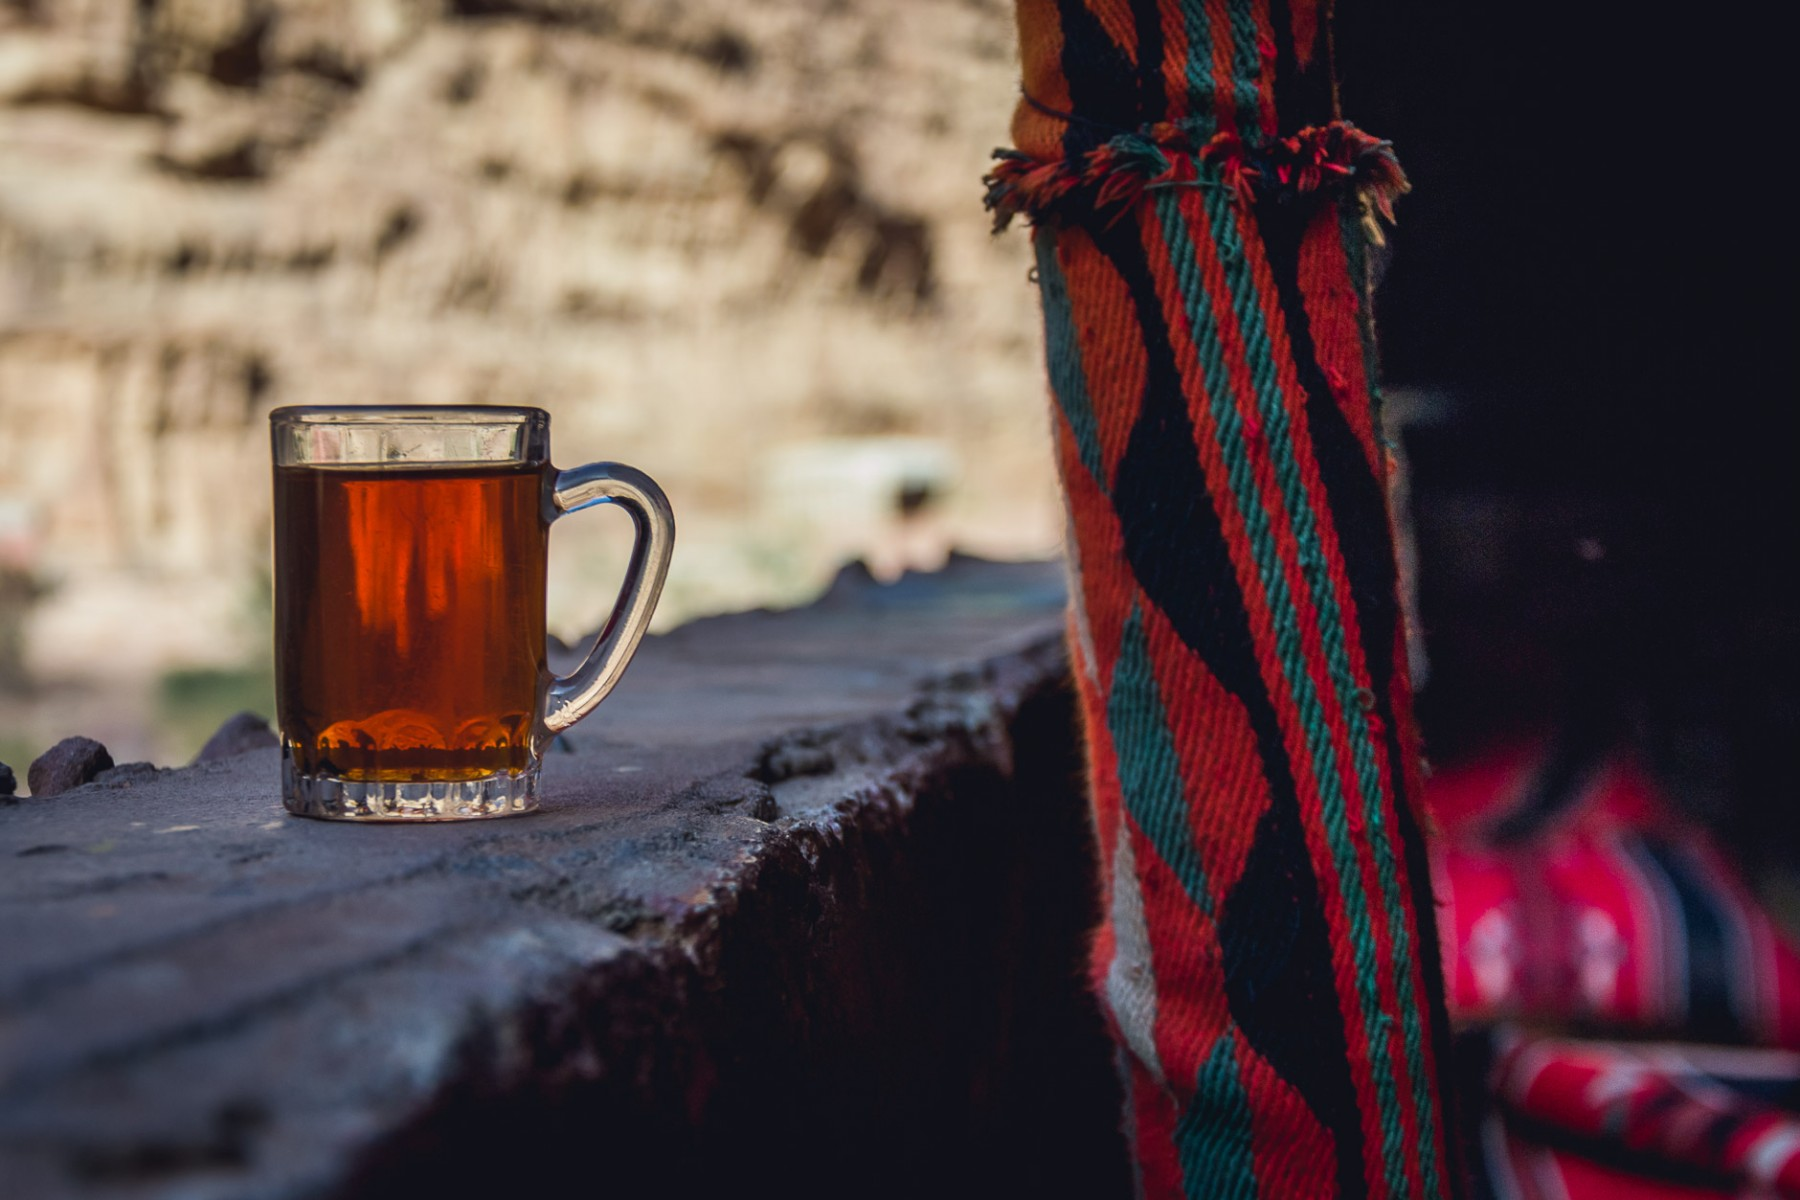 Bedouin tea in Wadi Rum, Jordan